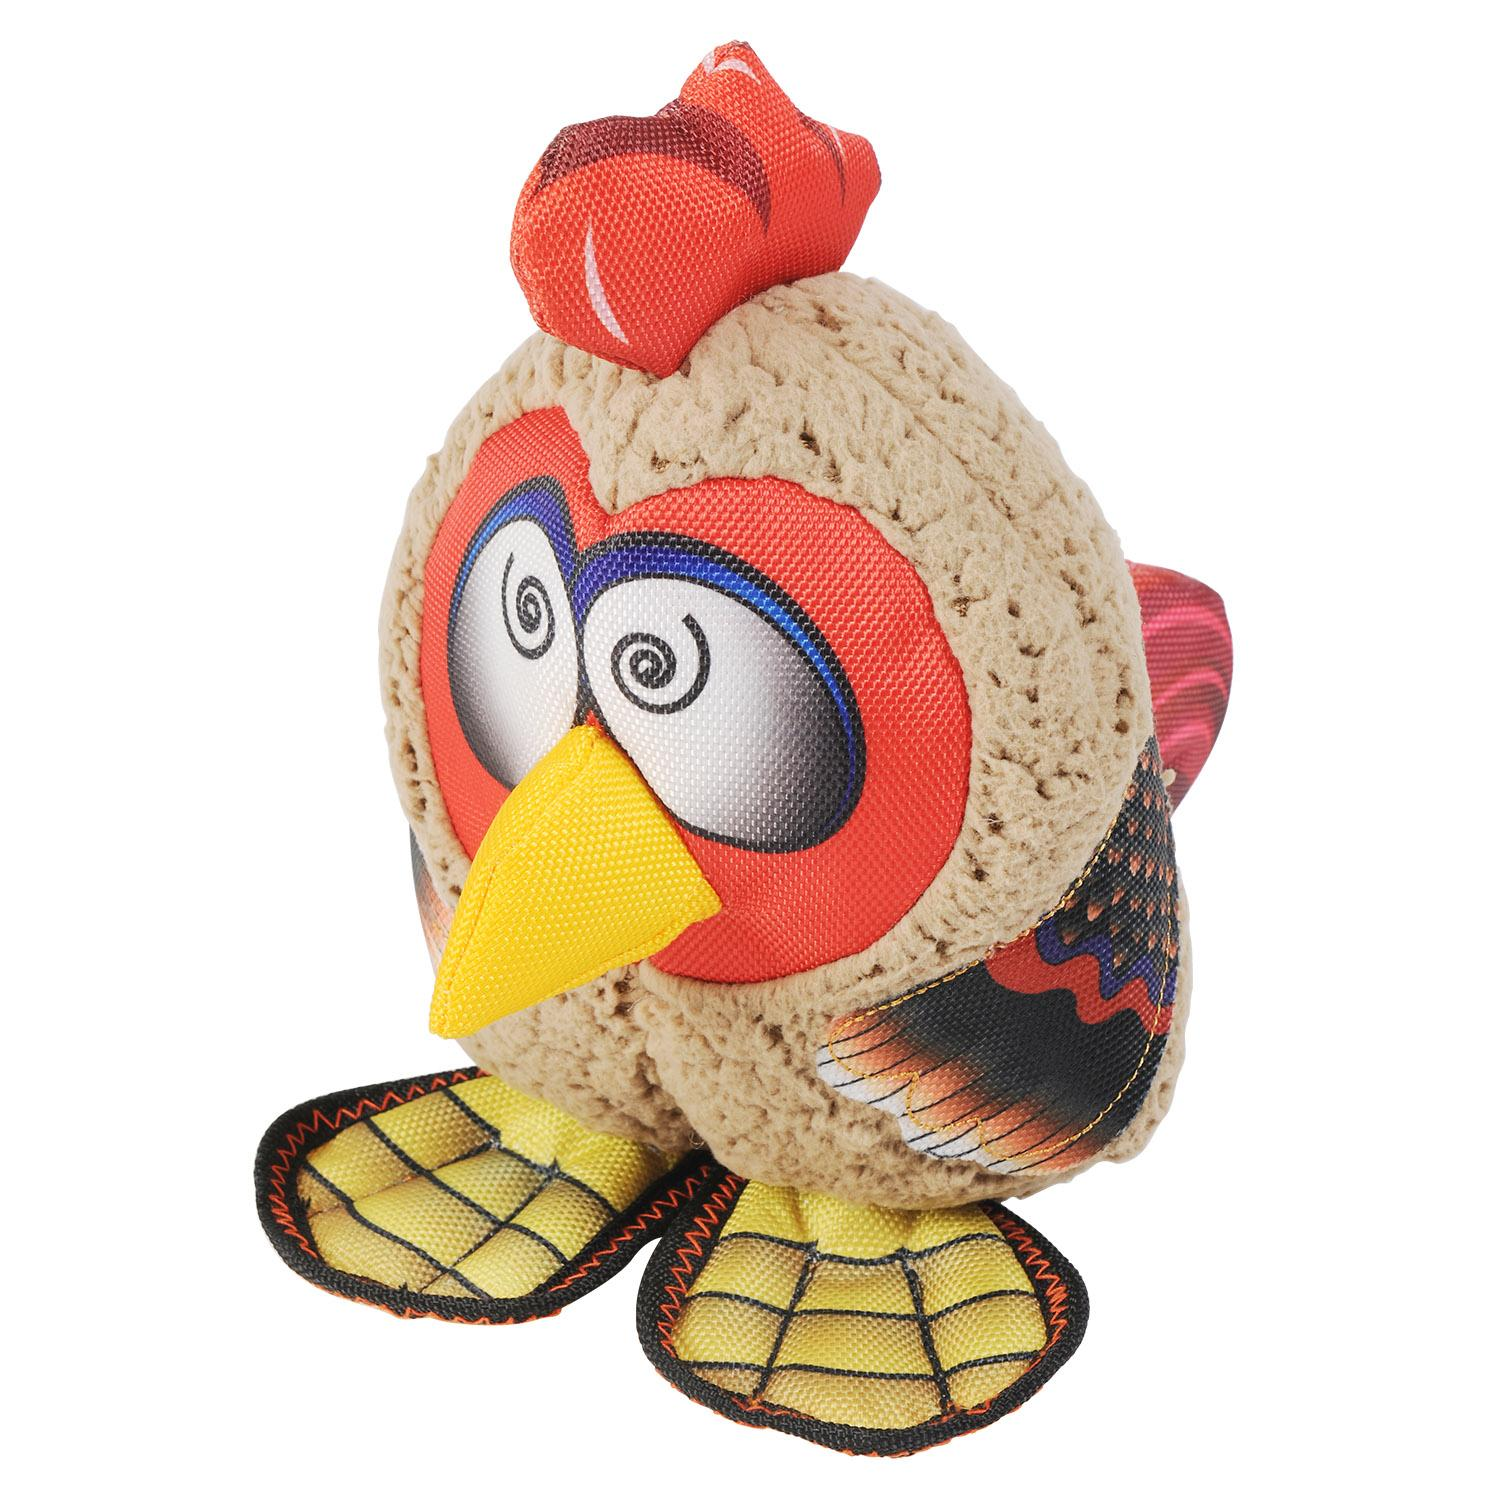 Happy Tails Loonies Durable Dog Toy - Zany Rooster